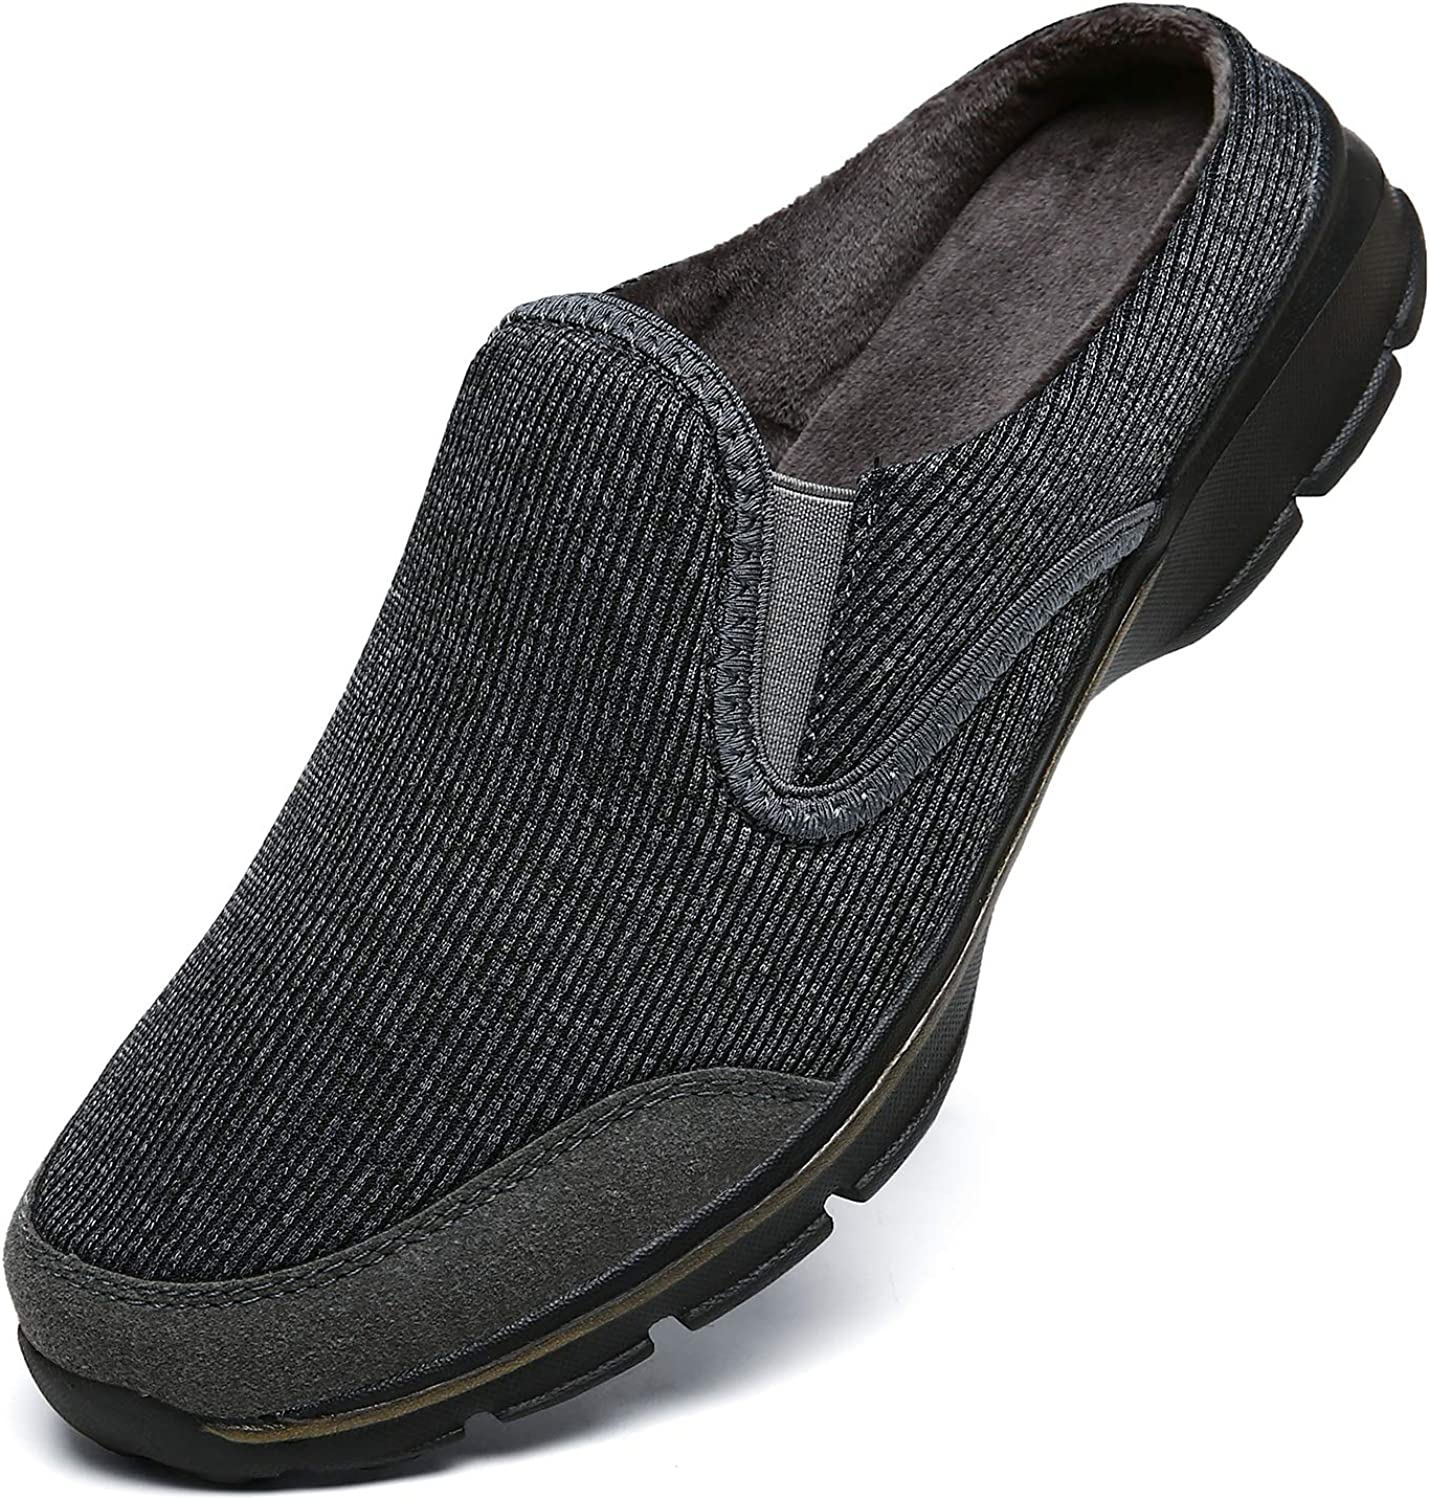 Max 52% OFF Unisex Slippers Casual Shoes Clog In a popularity House